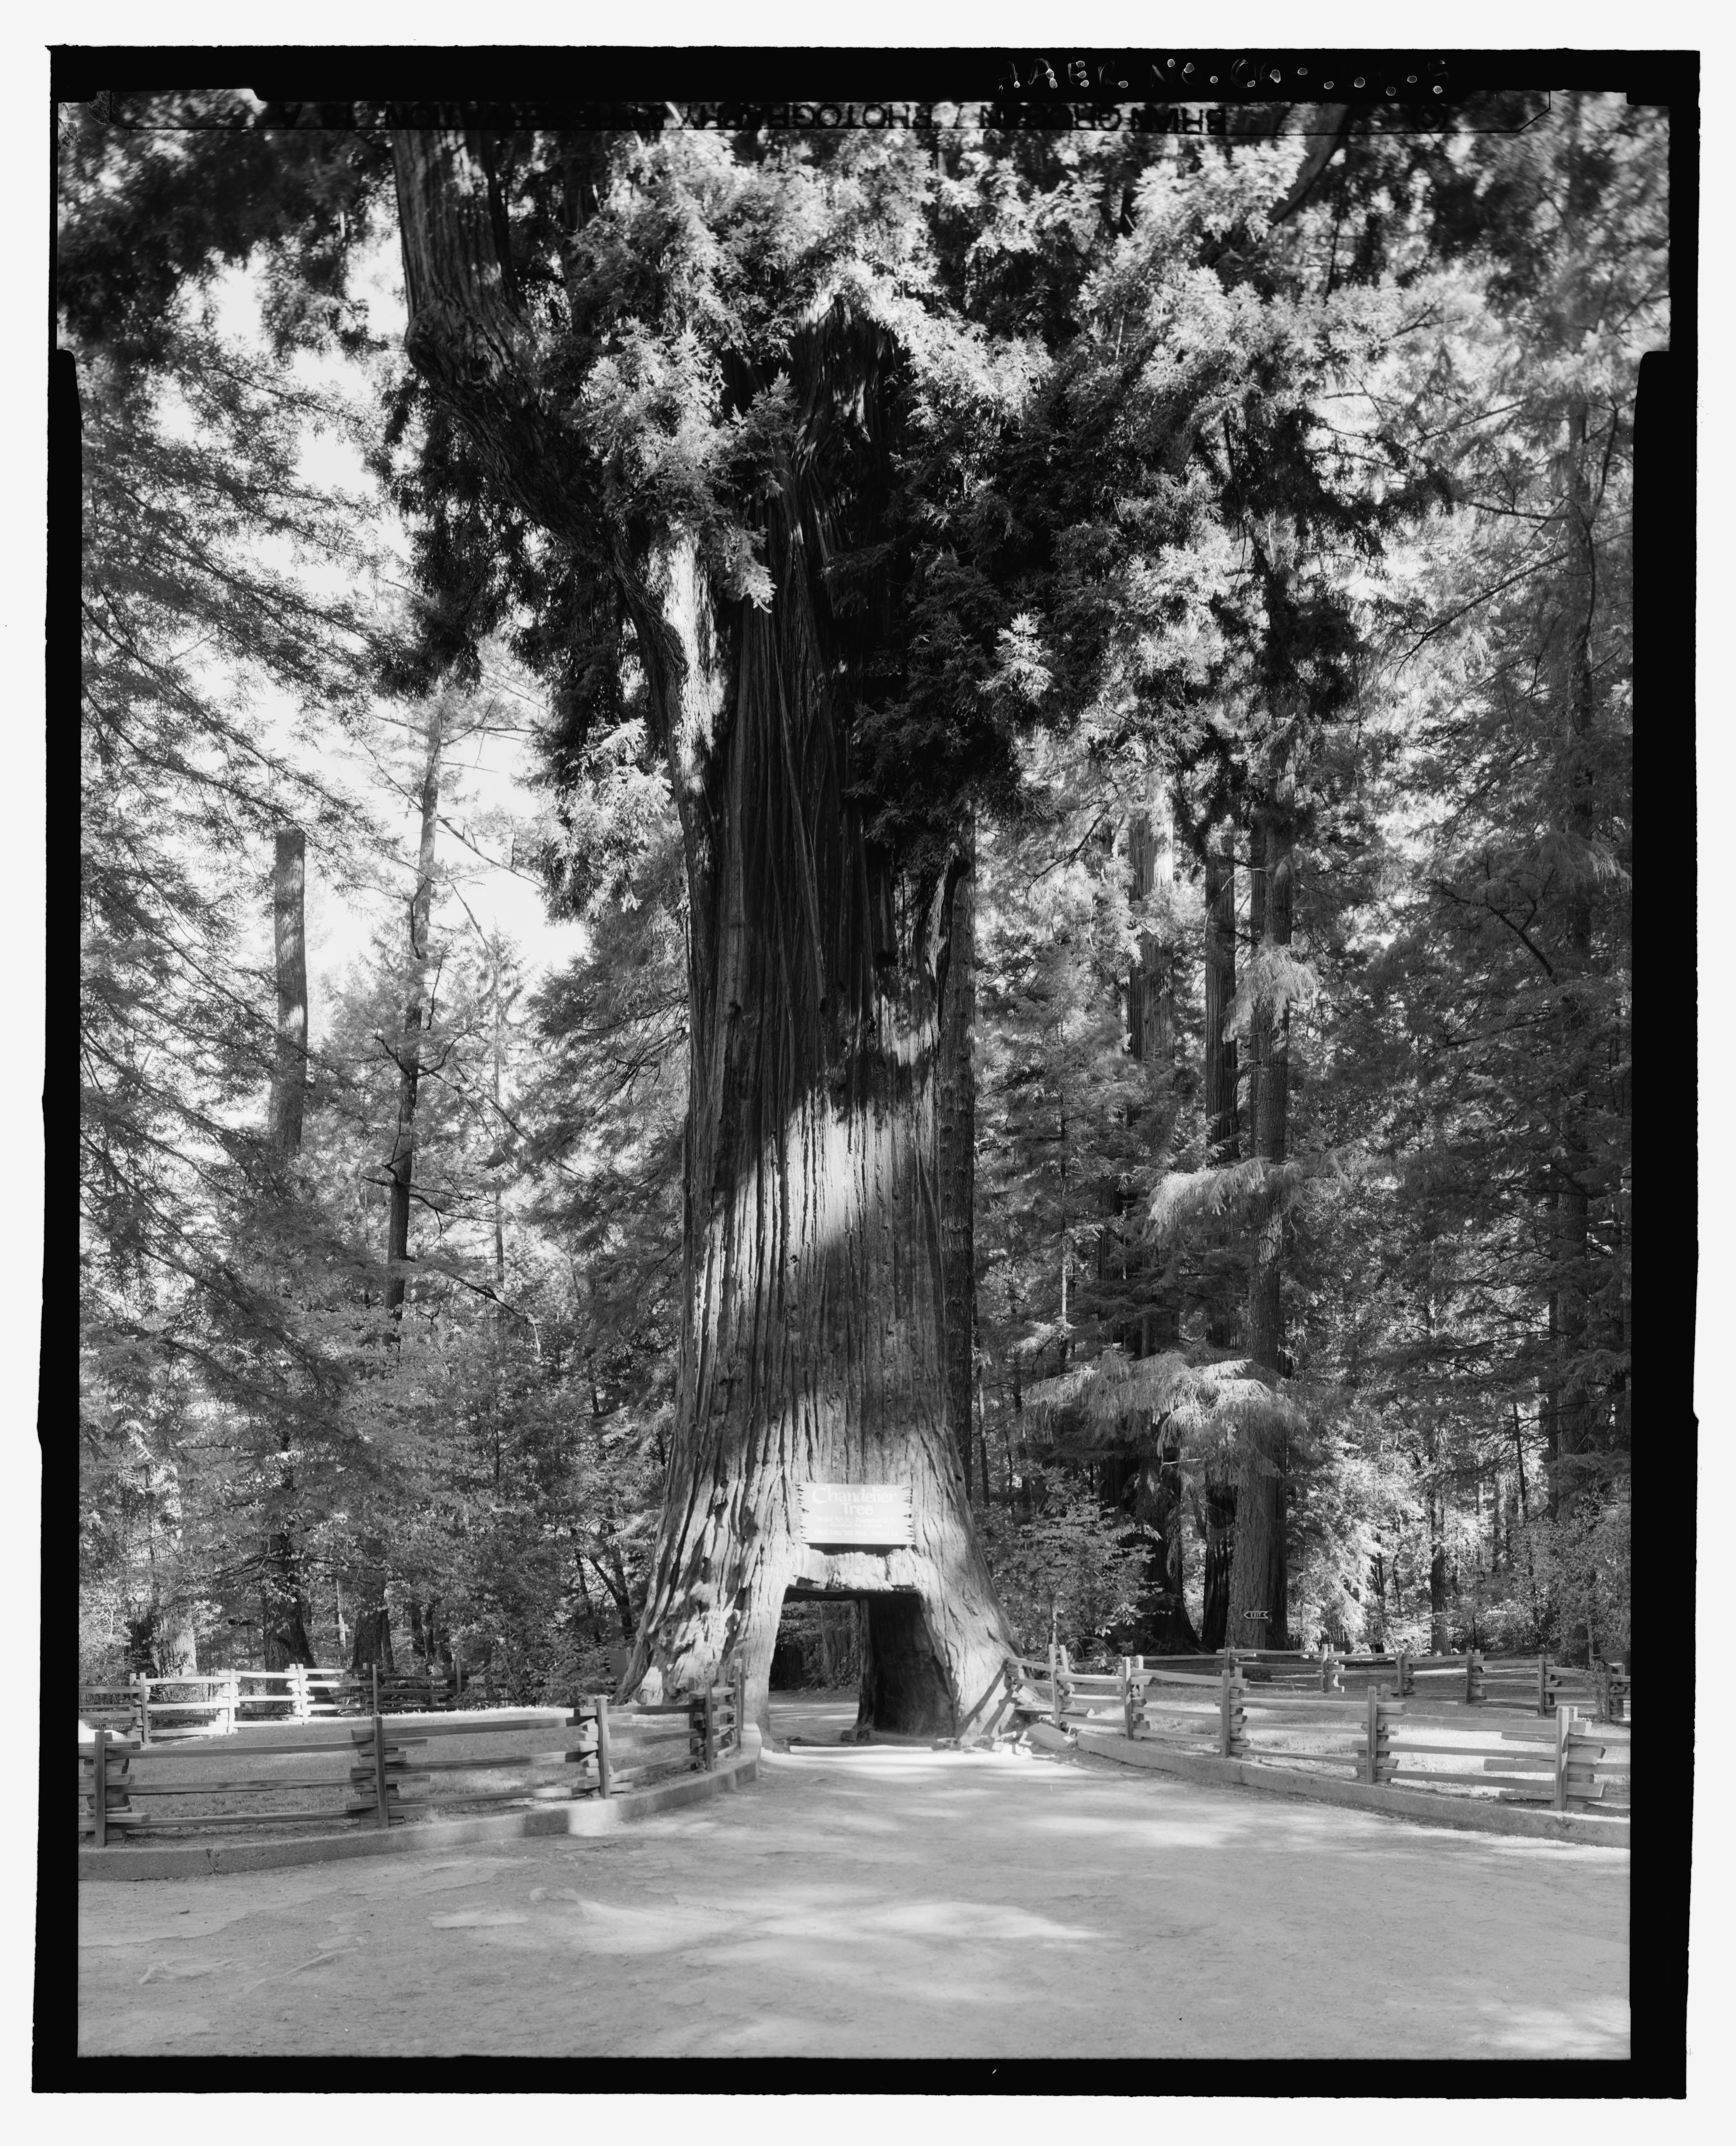 california state tree crannell creek giant coast redwood lindsey creek giant california state tree